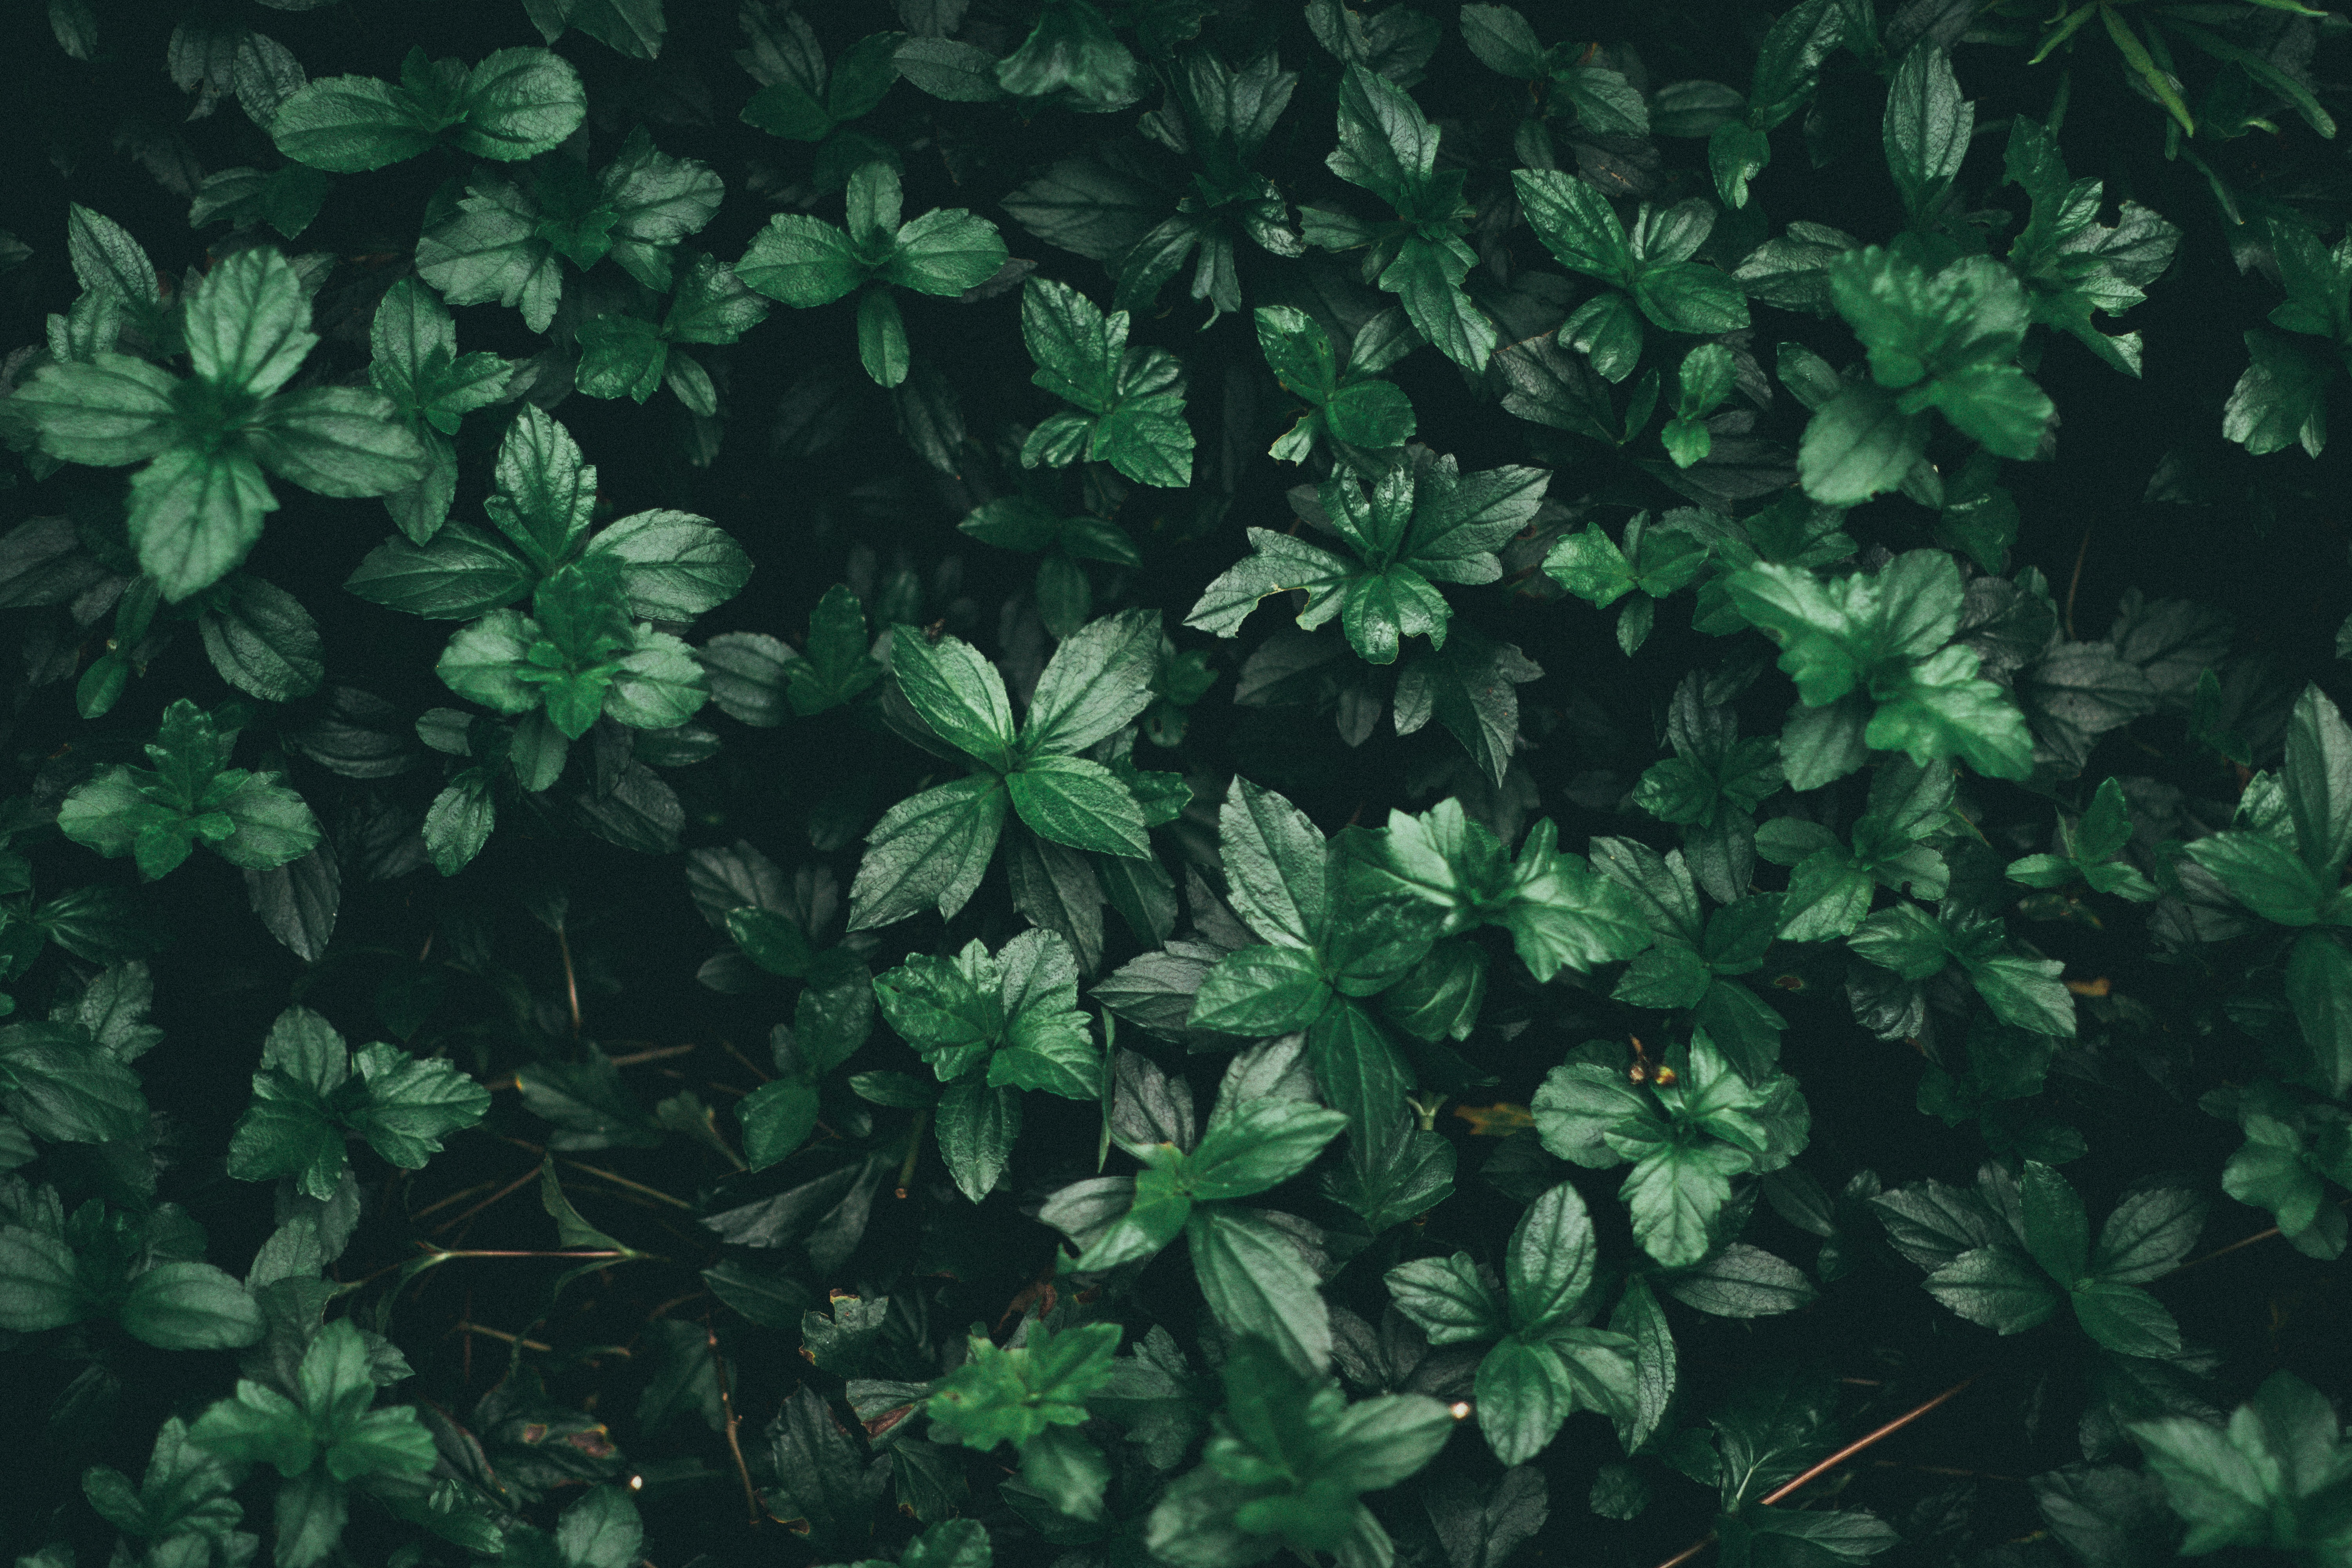 Leaf drops Wallpaper Plants Nature Wallpapers in jpg format for free